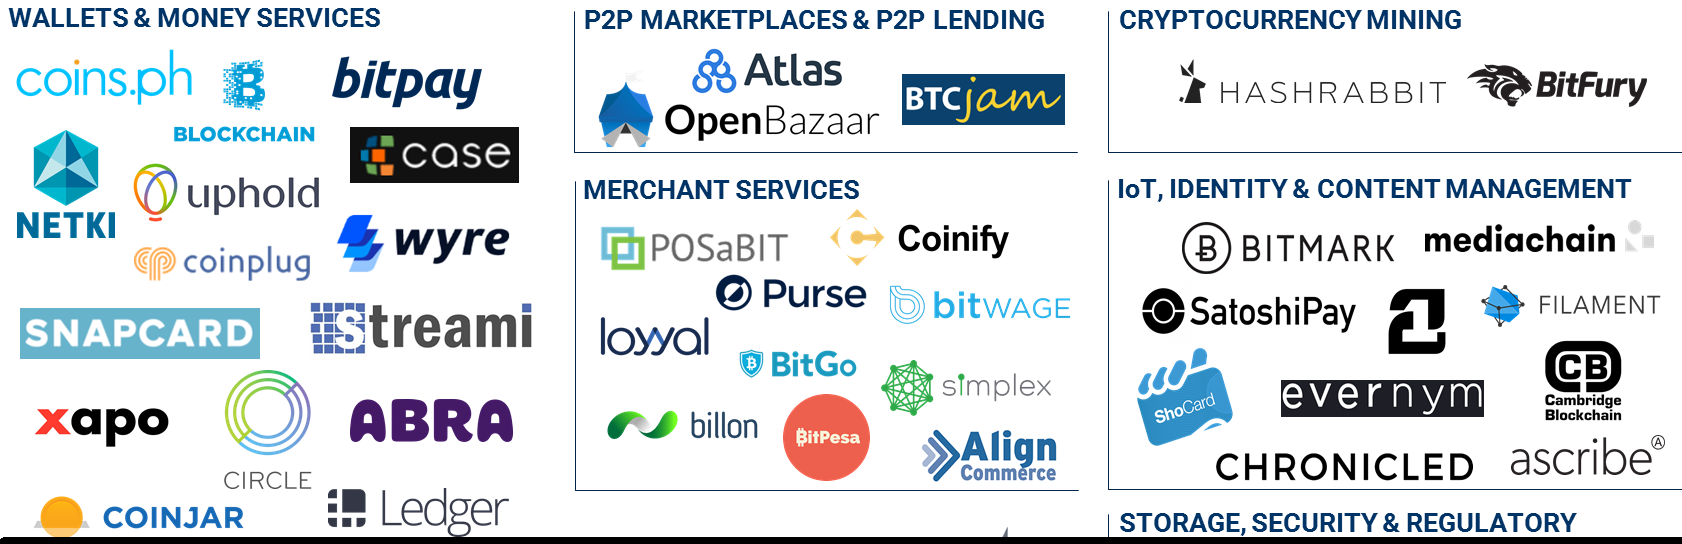 2017.02.07 Blockchain Market Map Featured PNG v3